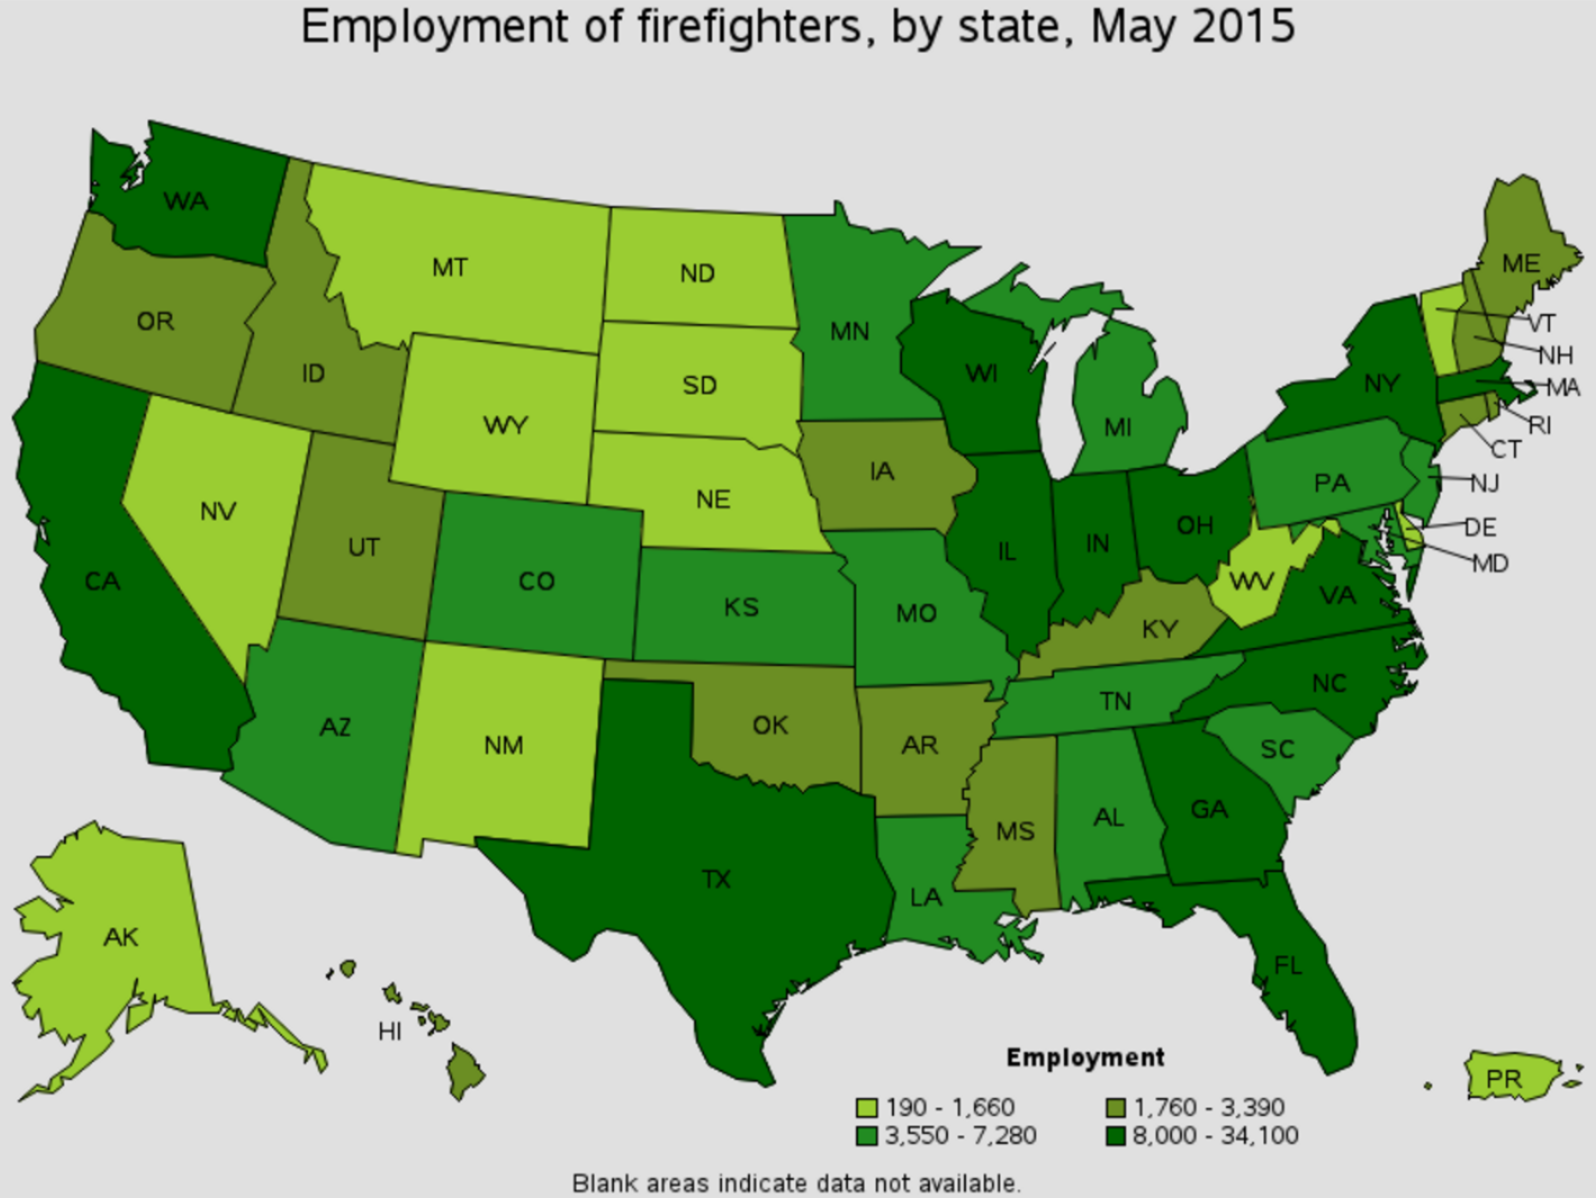 firefighter job outlook by state Seaford Delaware